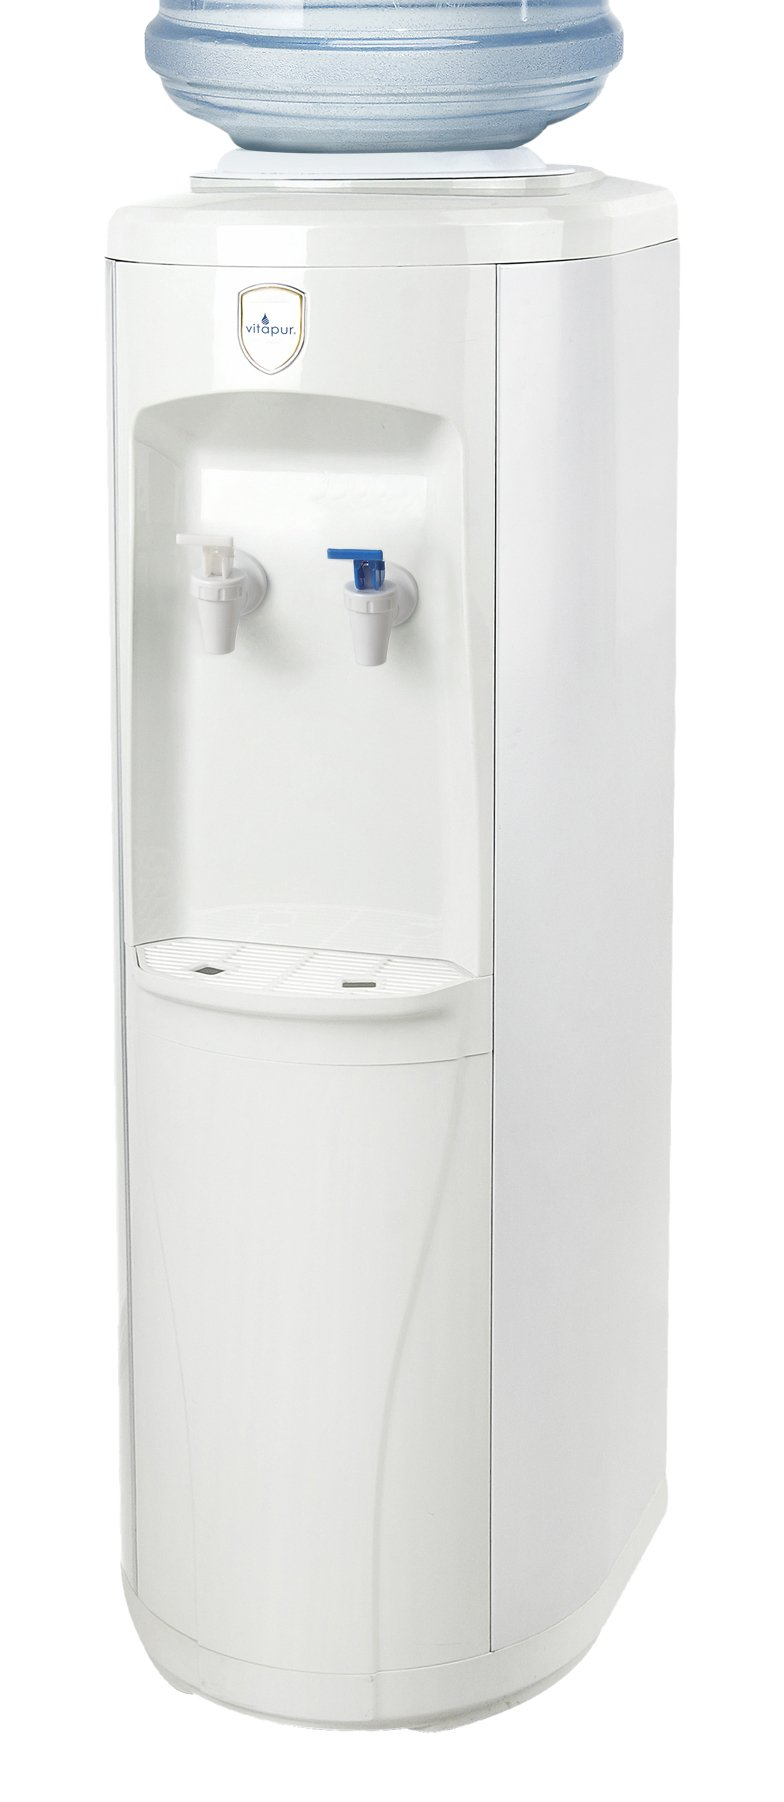 Vitapur VWD2236W Top Load Floor Standing Room Cold Standard Taps, White water dispenser, one size,